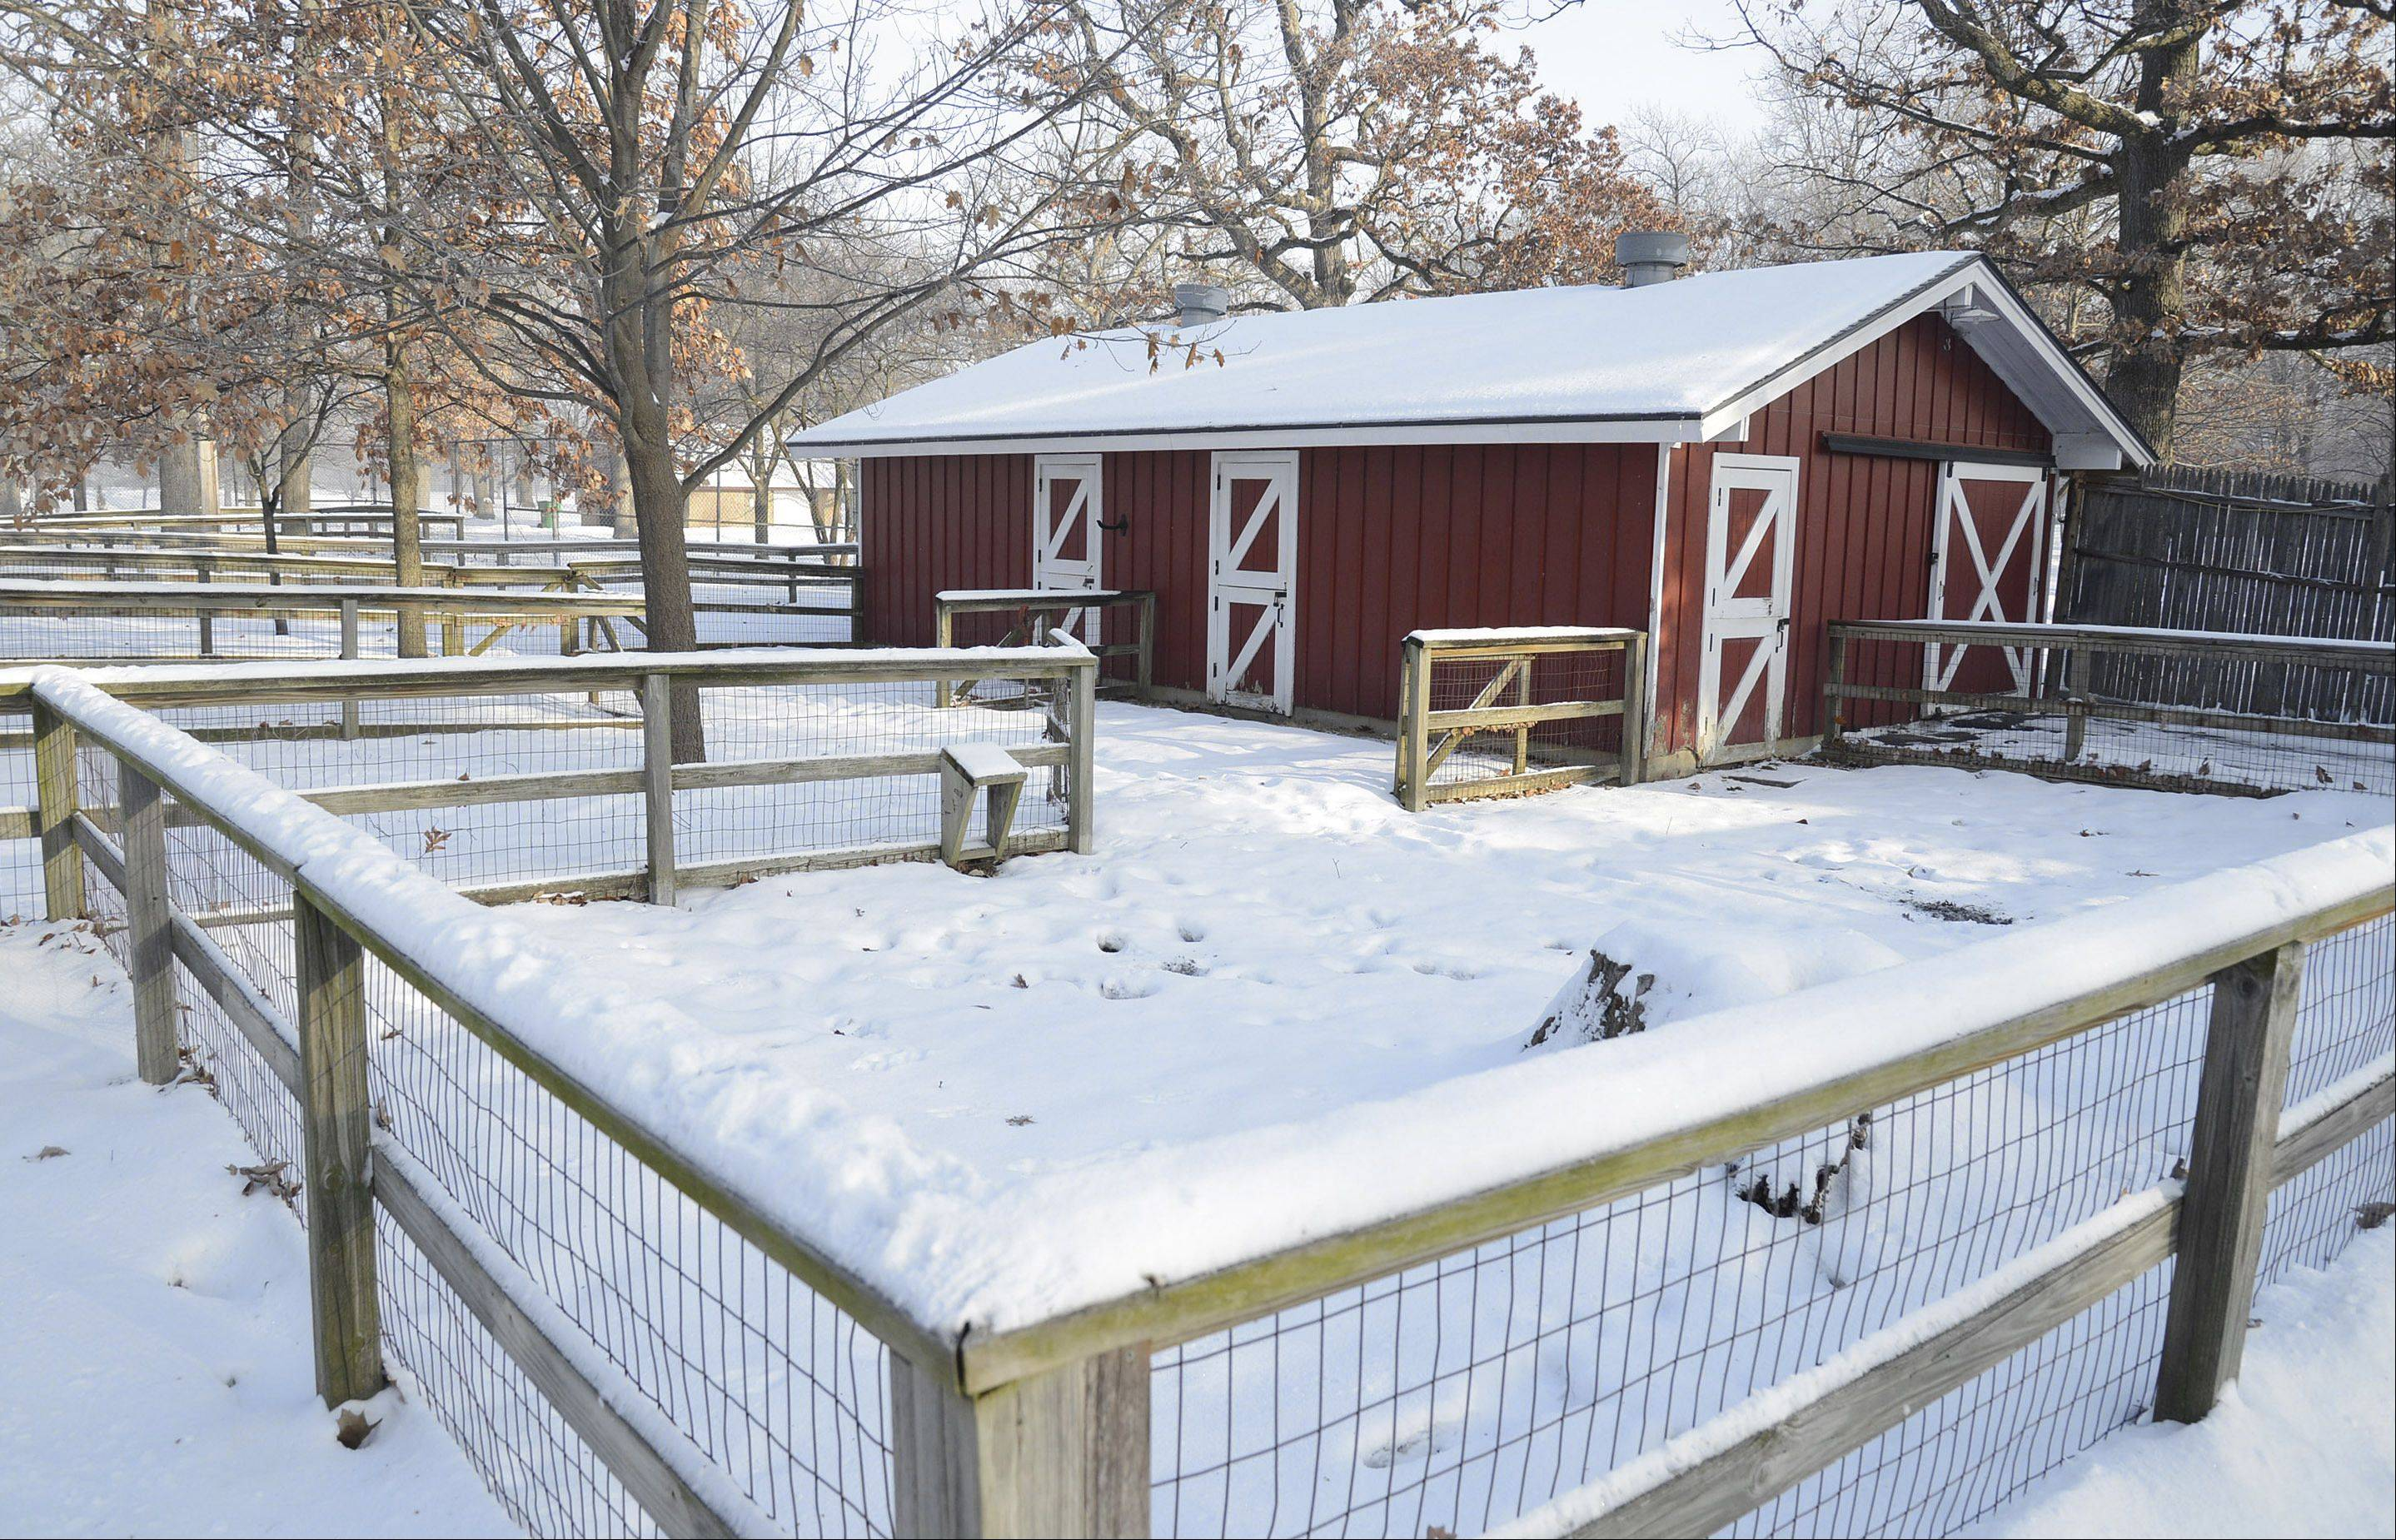 The Friends of Lords Park Zoo group in Elgin is planning to bring back farm animals this summer after they were cut from the budget a few years ago. This barn previously housed pigs, goats, calves and llamas.